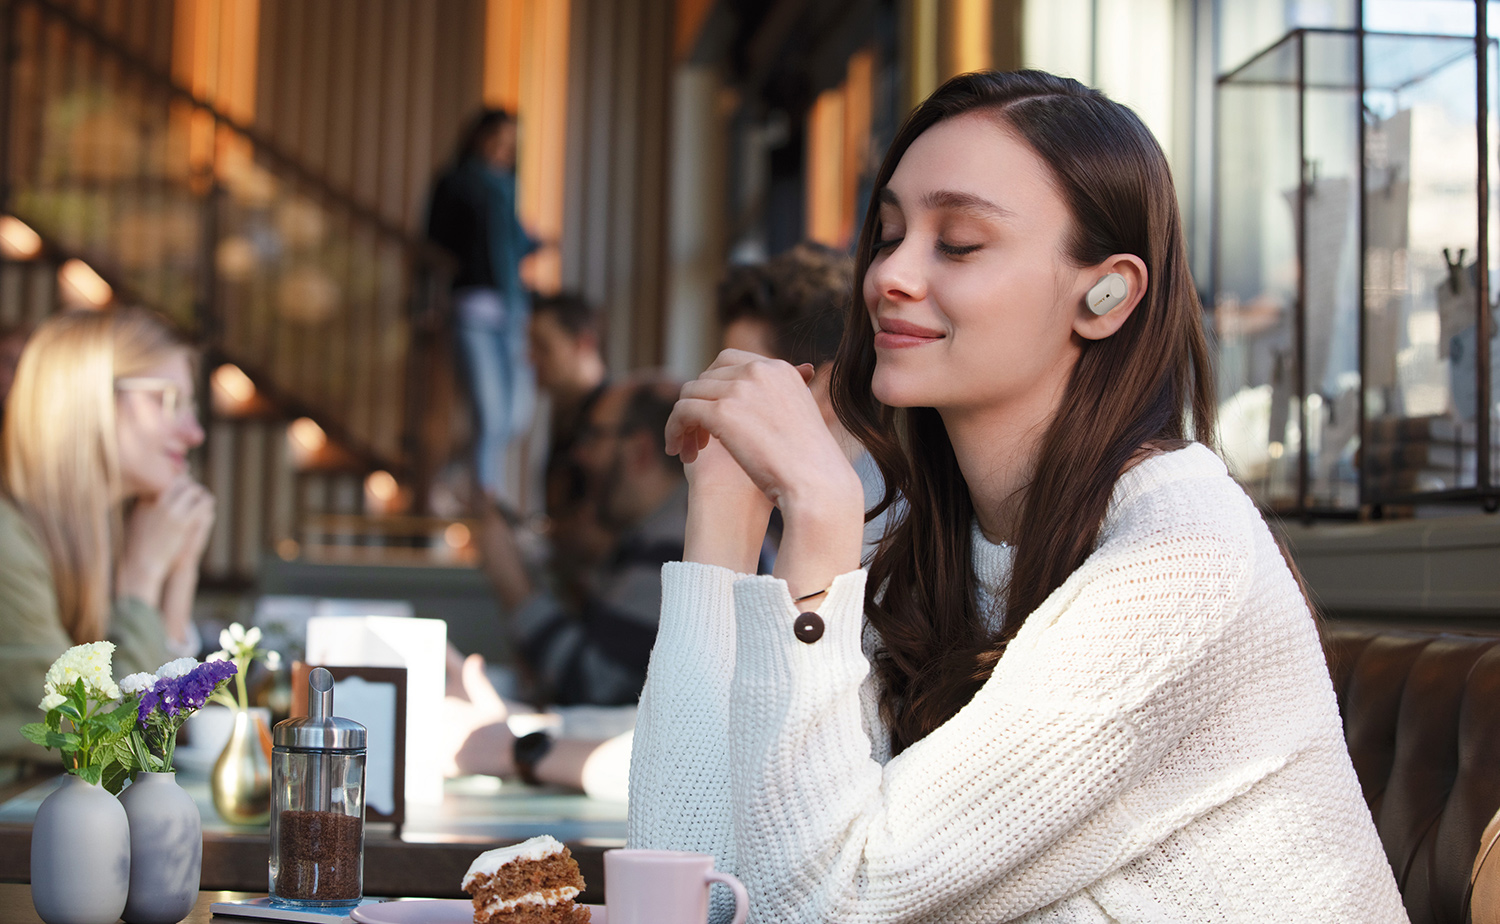 image of woman enjoying silence due to Truly Wireless headphones